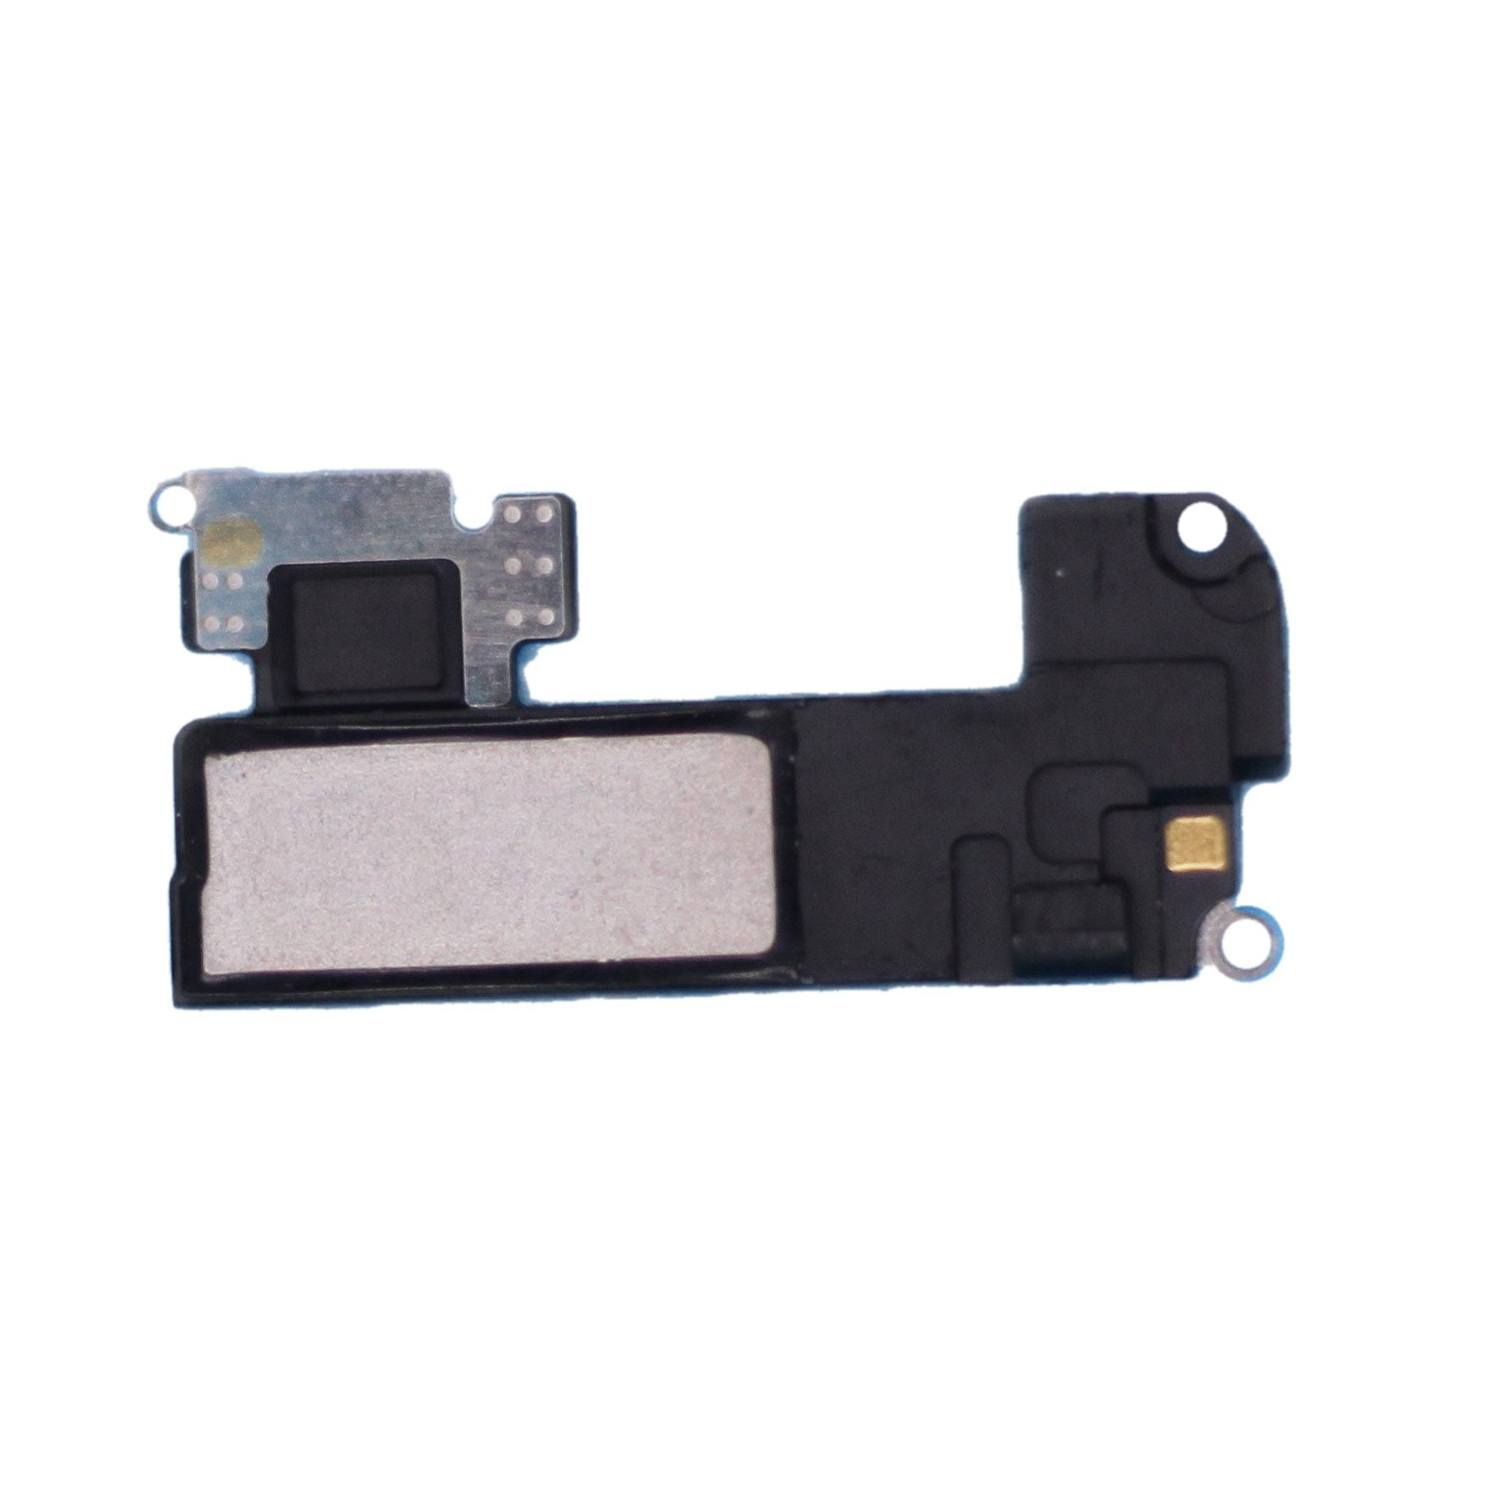 Ear Piece Speaker replacement for iPhone XS A1920 A2097 A2098 A2100 Pic1